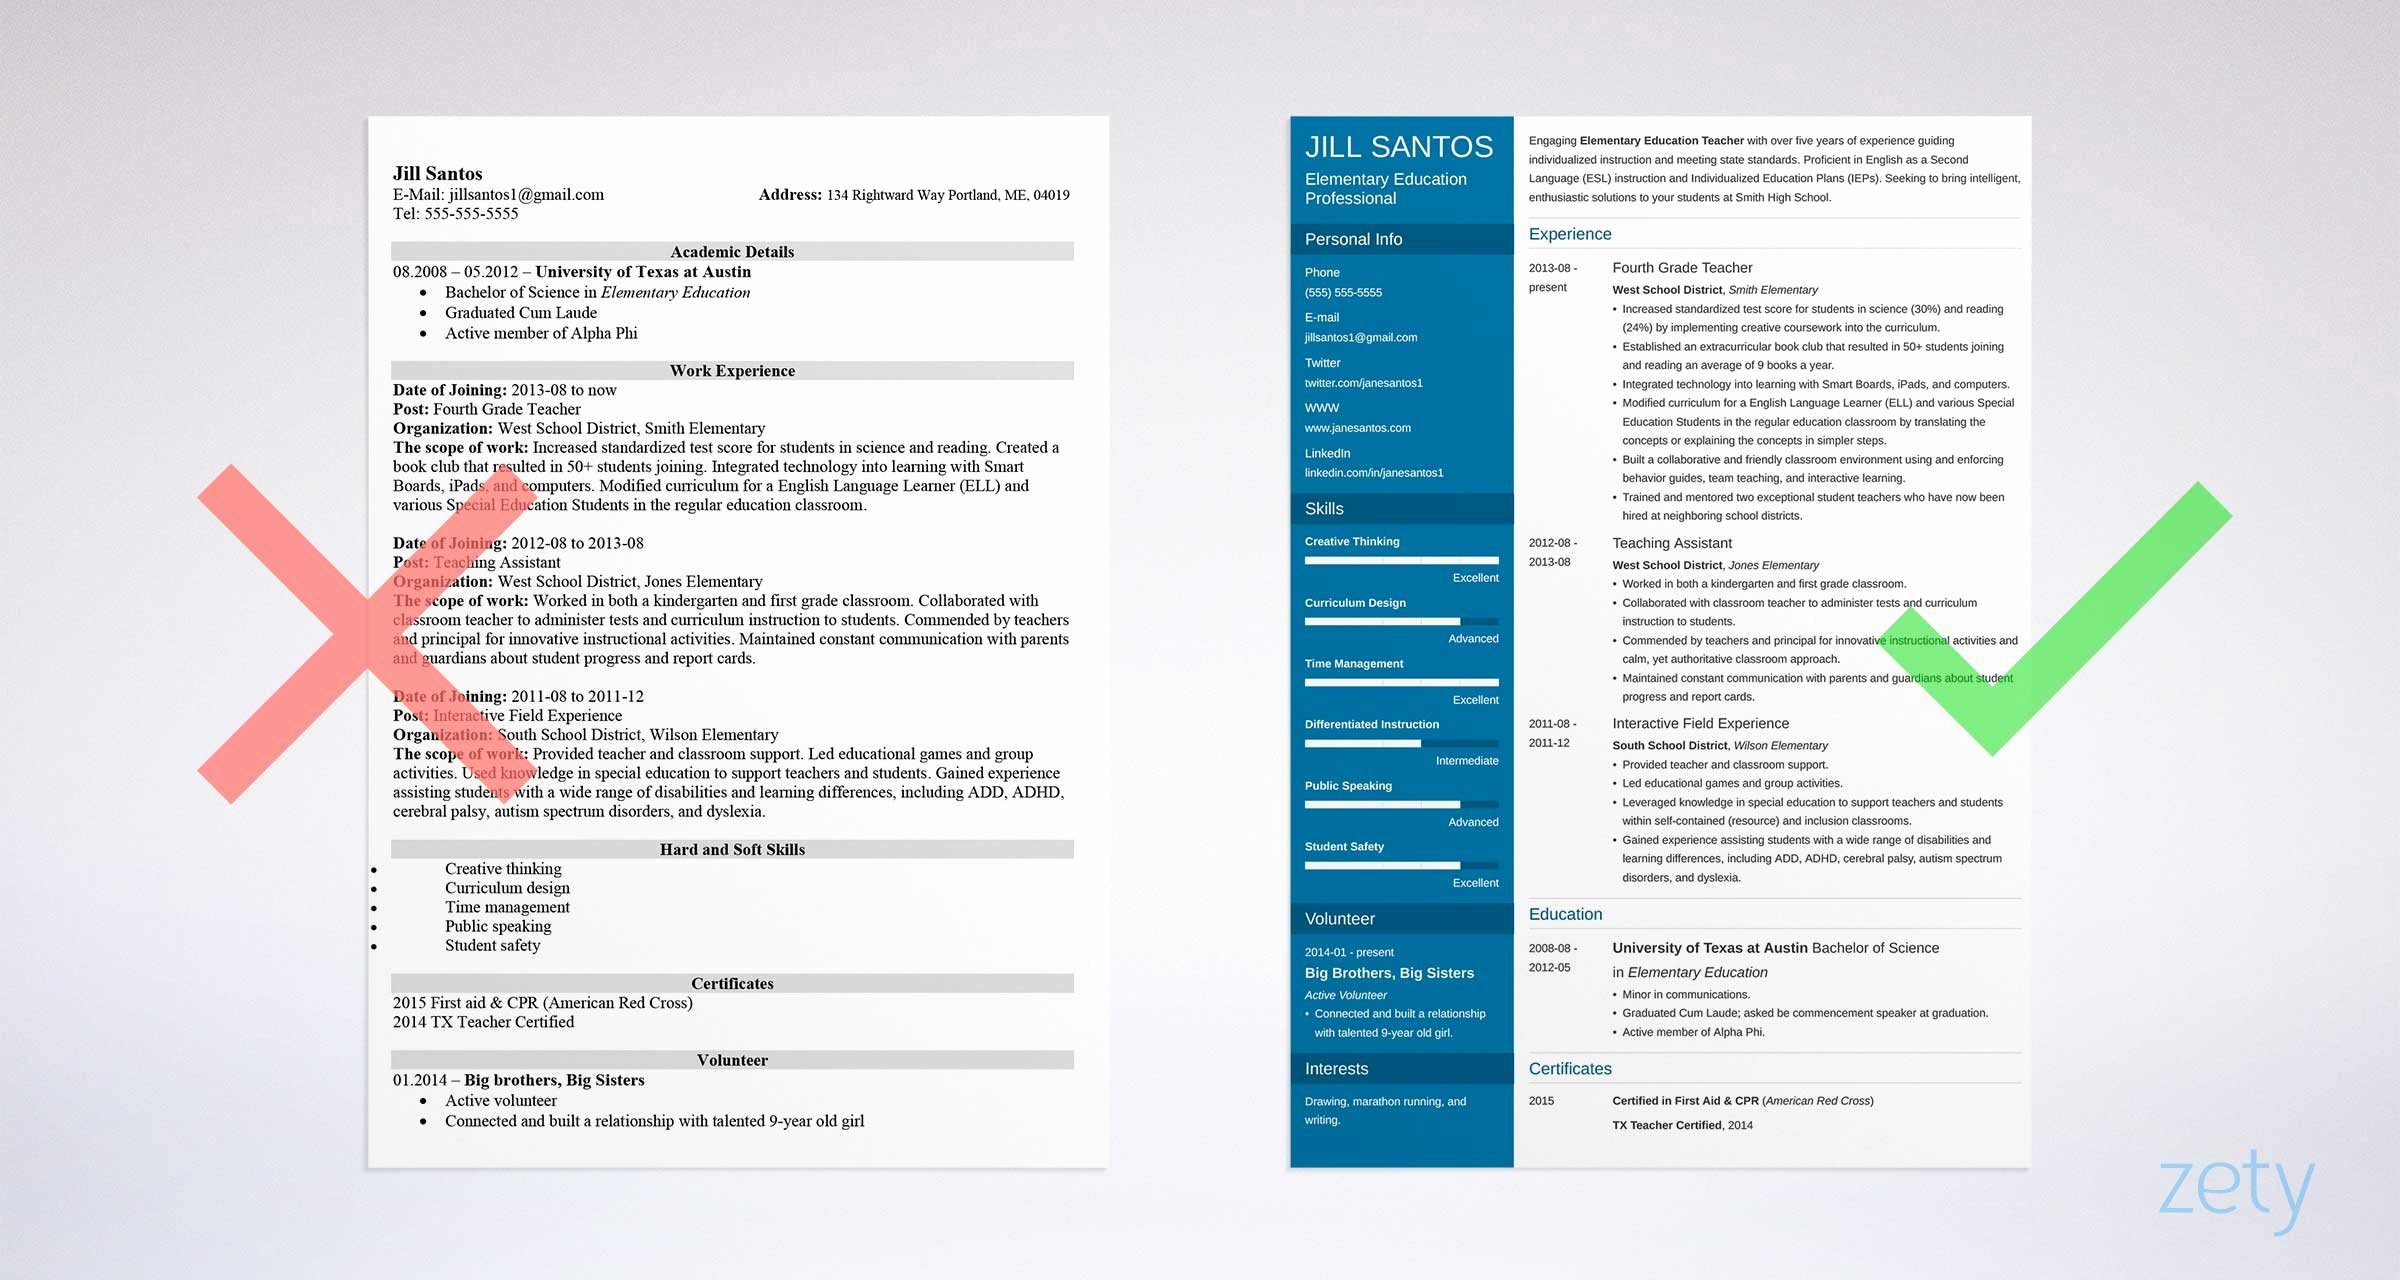 Teacher Resume Template Free Luxury Teacher Resume Template & Guide 20 Examples for Teaching